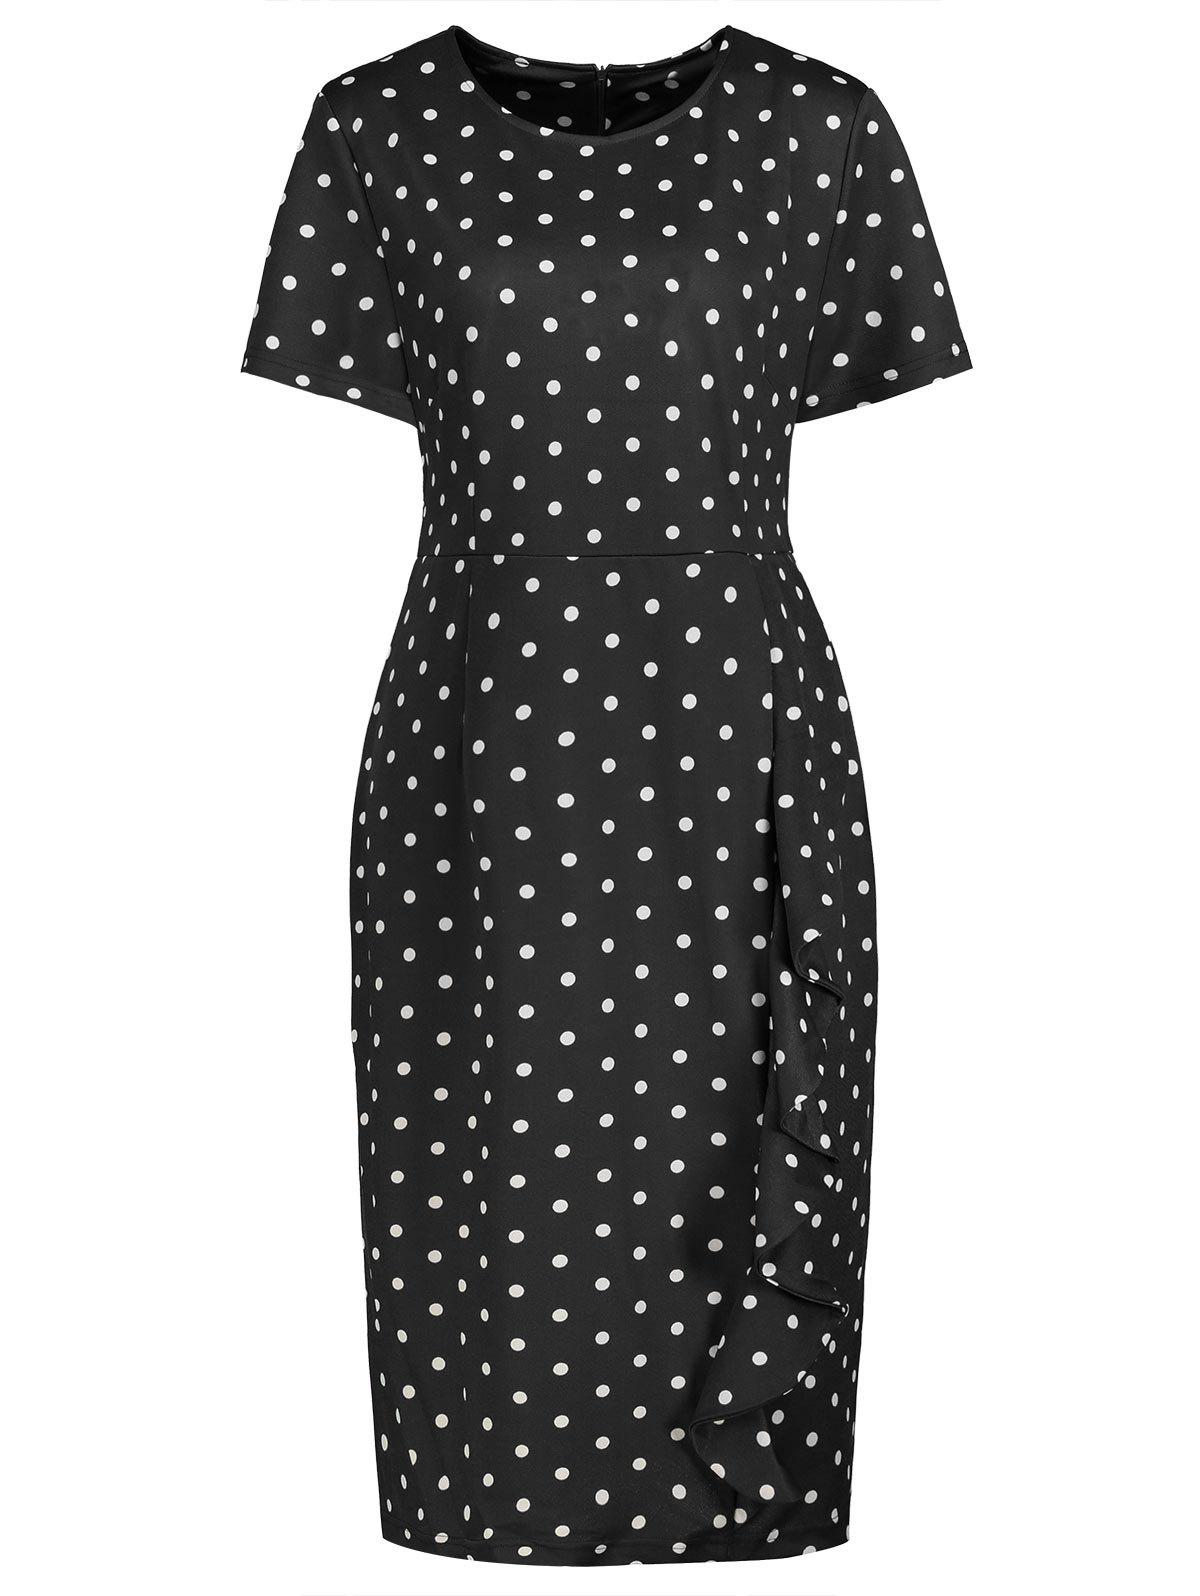 Tight Polka Dot Ruffle Plus Size Pencil DressWOMEN<br><br>Size: 5XL; Color: BLACK; Style: Casual; Material: Polyester; Silhouette: Bodycon; Dresses Length: Knee-Length; Neckline: Round Collar; Sleeve Length: Short Sleeves; Embellishment: Ruffles; Pattern Type: Polka Dot; With Belt: No; Season: Fall,Spring,Summer; Weight: 0.3800kg; Package Contents: 1 x Dress;